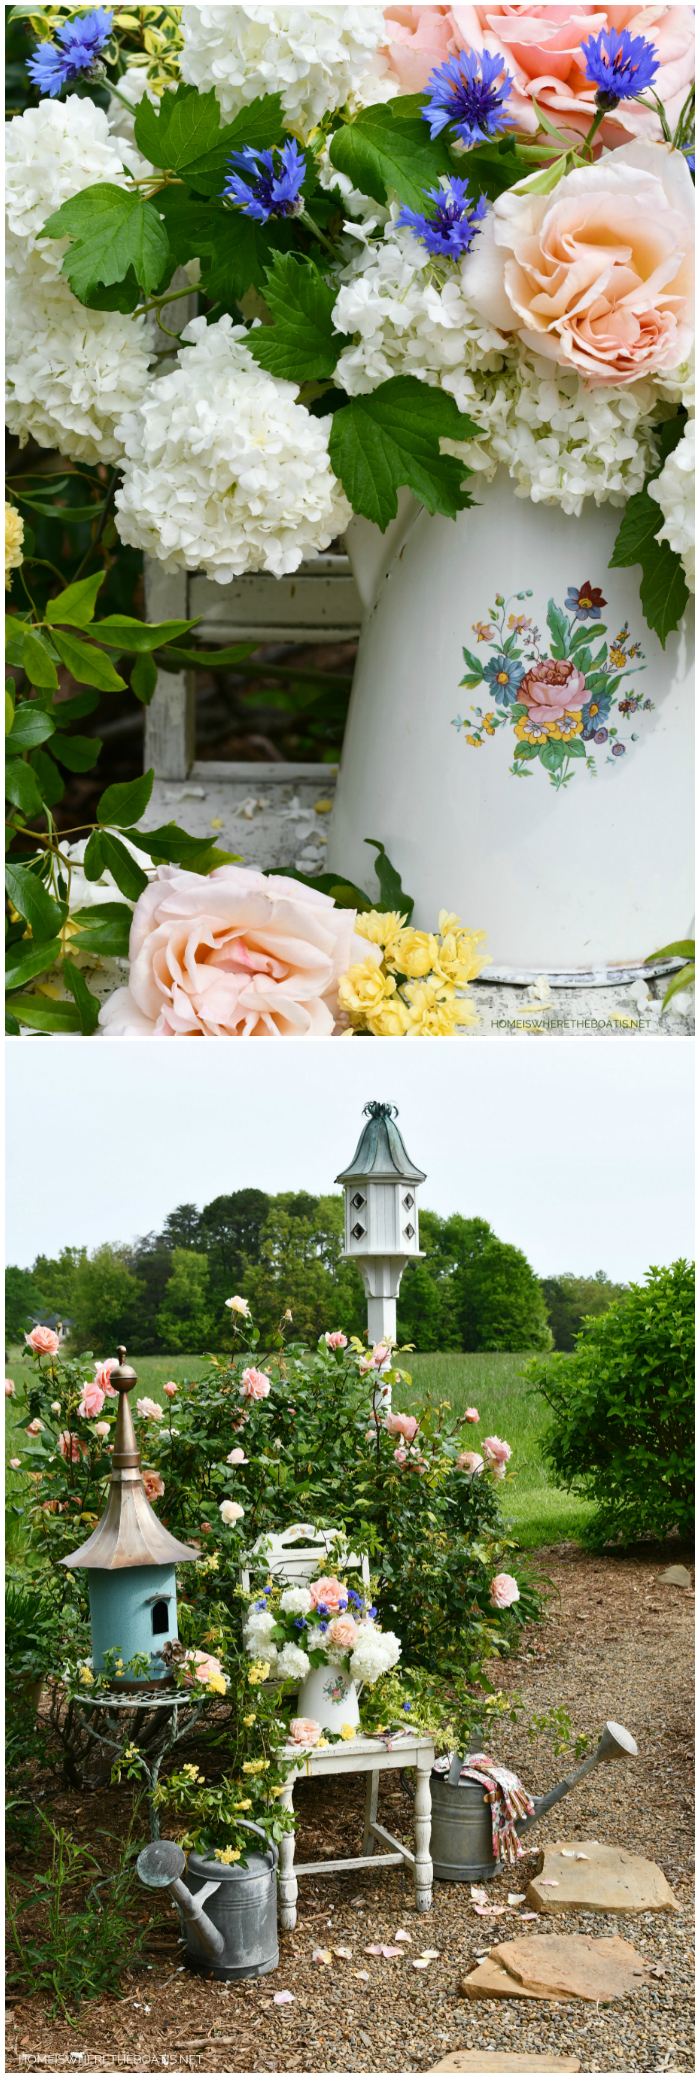 Garden arrangement in a vintage enamelware pitcher, filled with Snowball Viburnum. Bachelor Buttons, Lady Banks and Mother of Pearl Roses | ©homeiswheretheboatis.net #flowers #garden